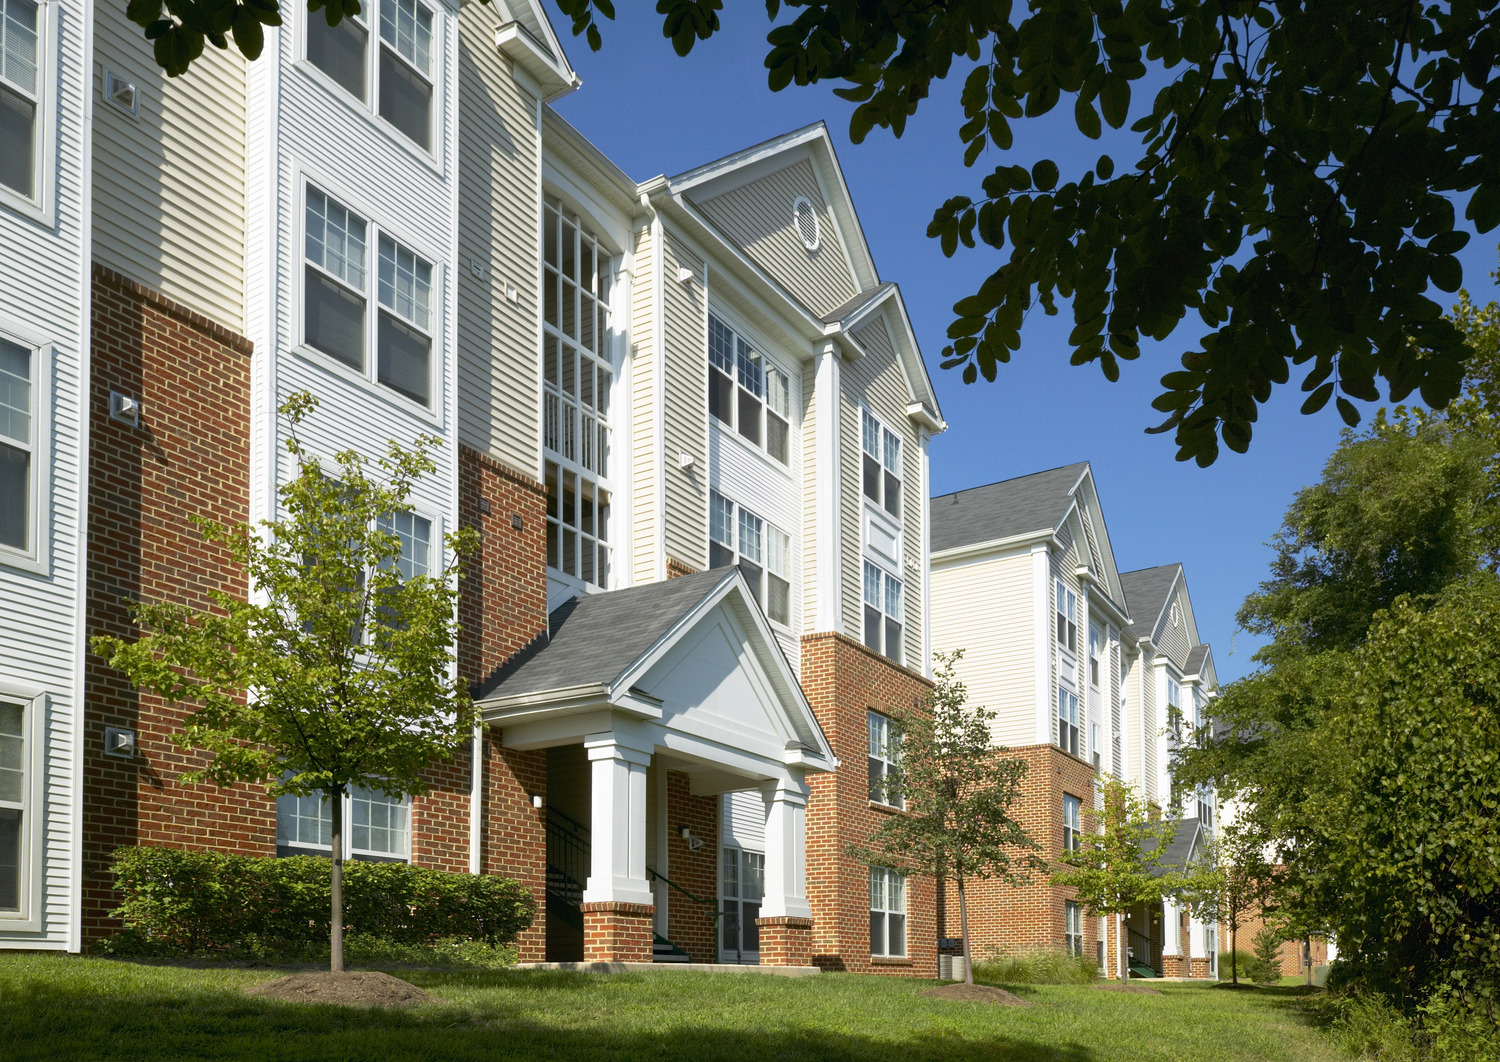 CBG builds Springfield Crossing, a 356 Market-Rate Garden-Style and High-Rise Apartments in Springfield, VA - Image #5